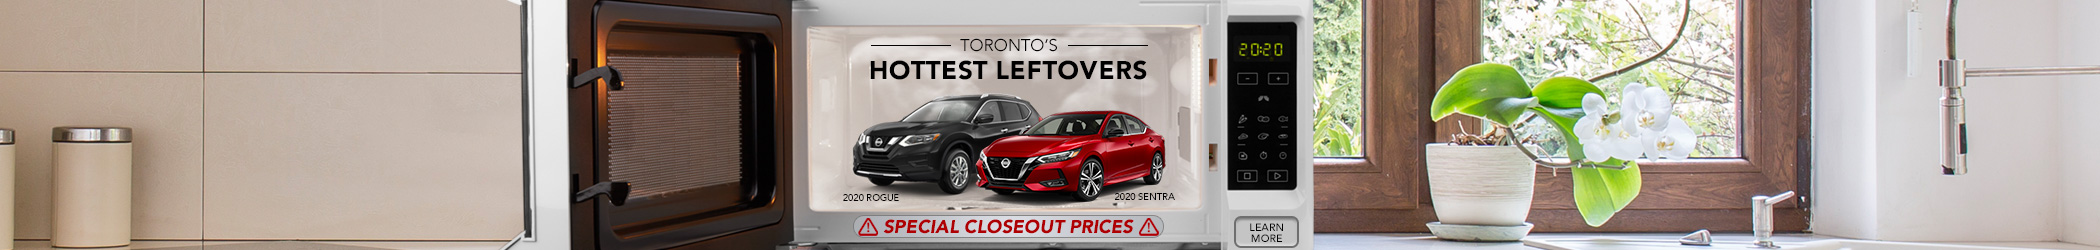 Click Here To Shop Toronto's Hottest Leftovers